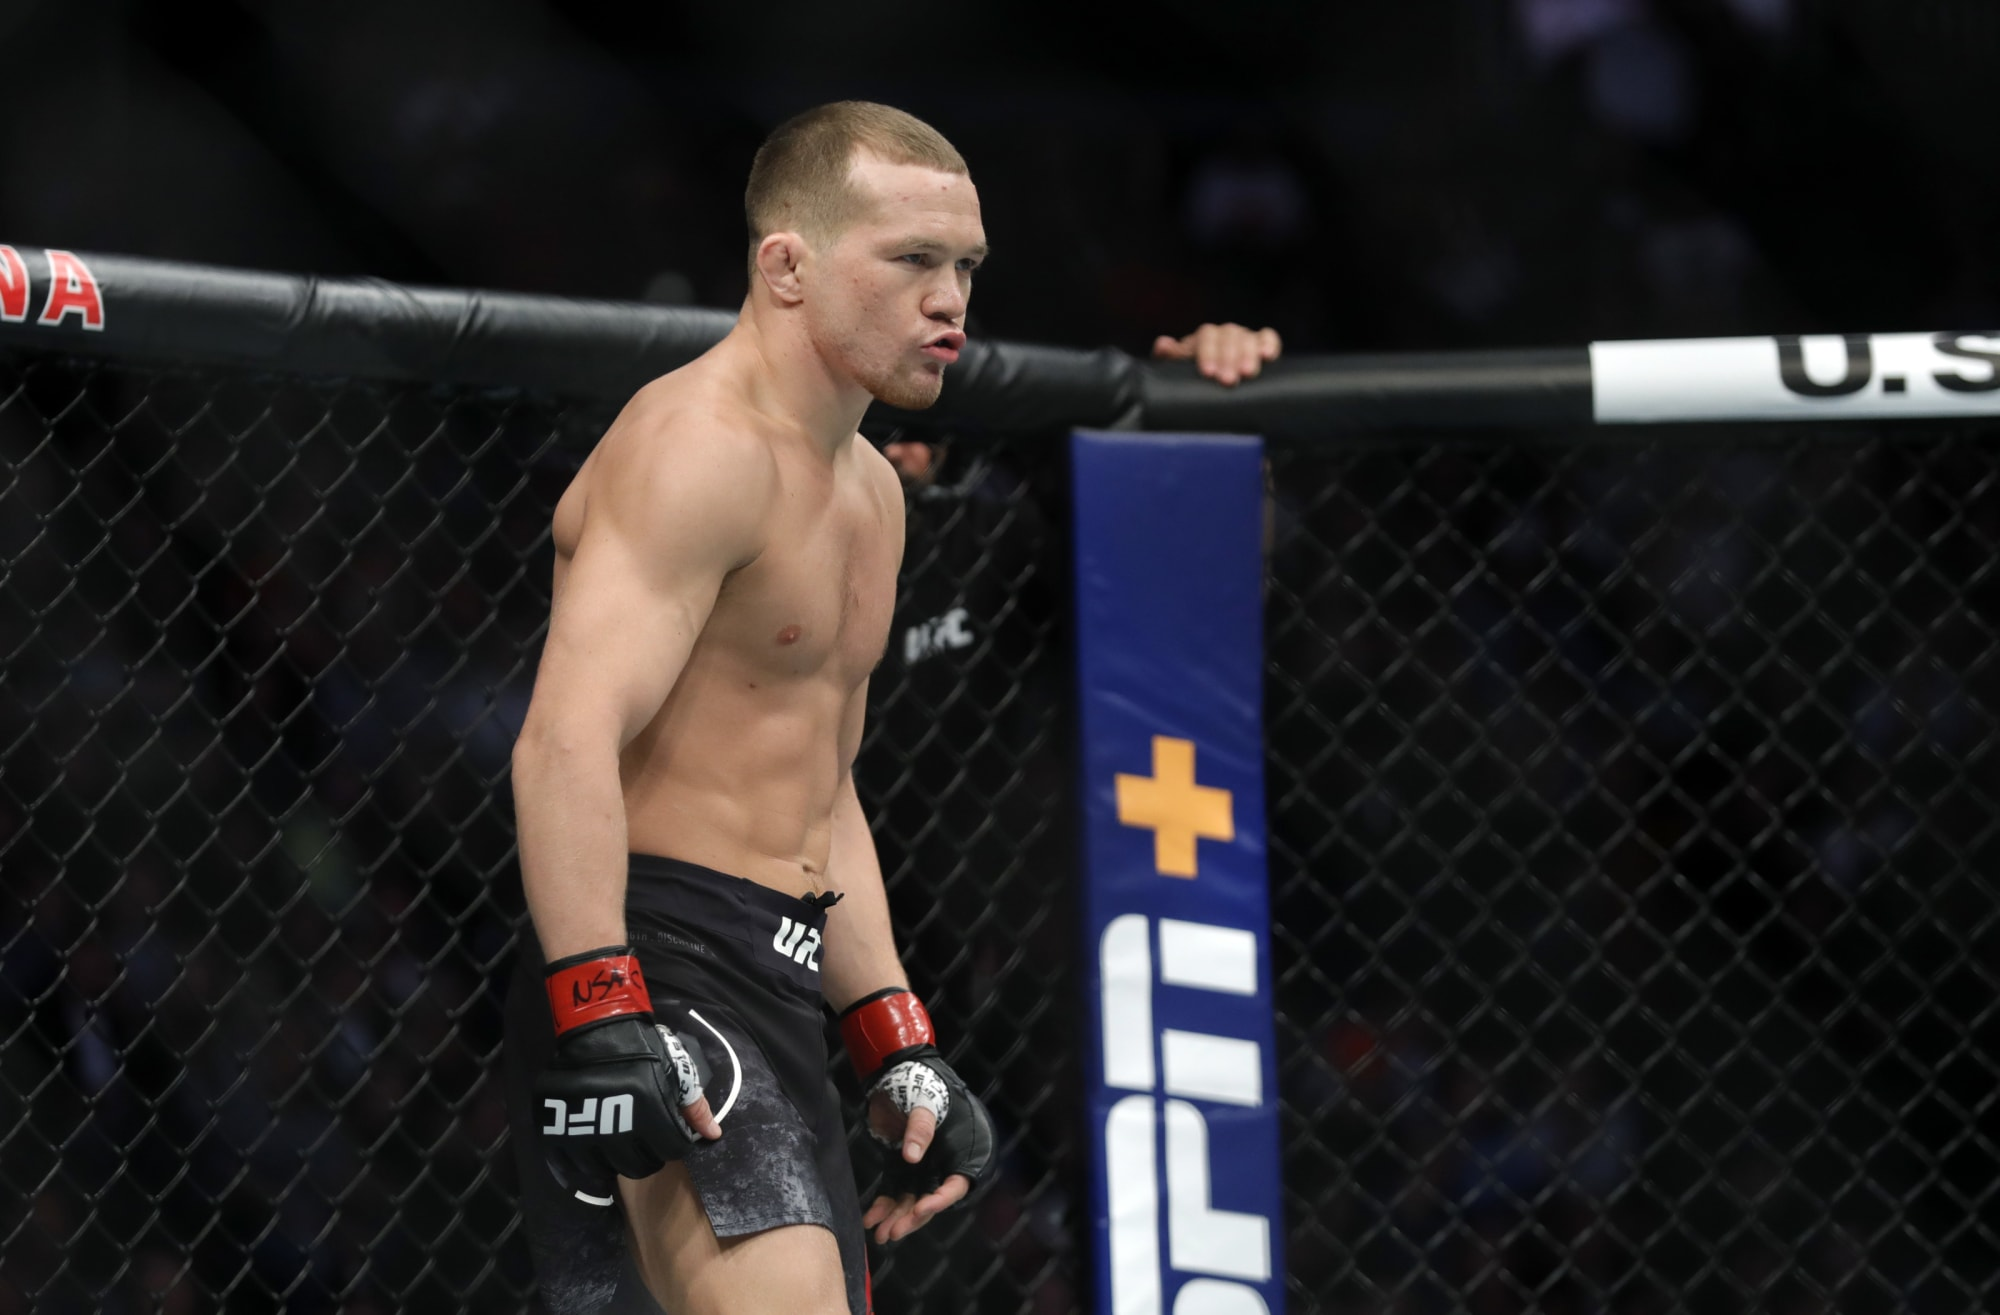 UFC 251: Twitter reacts to late stoppage in Petr Yan's TKO win over Jose Aldo